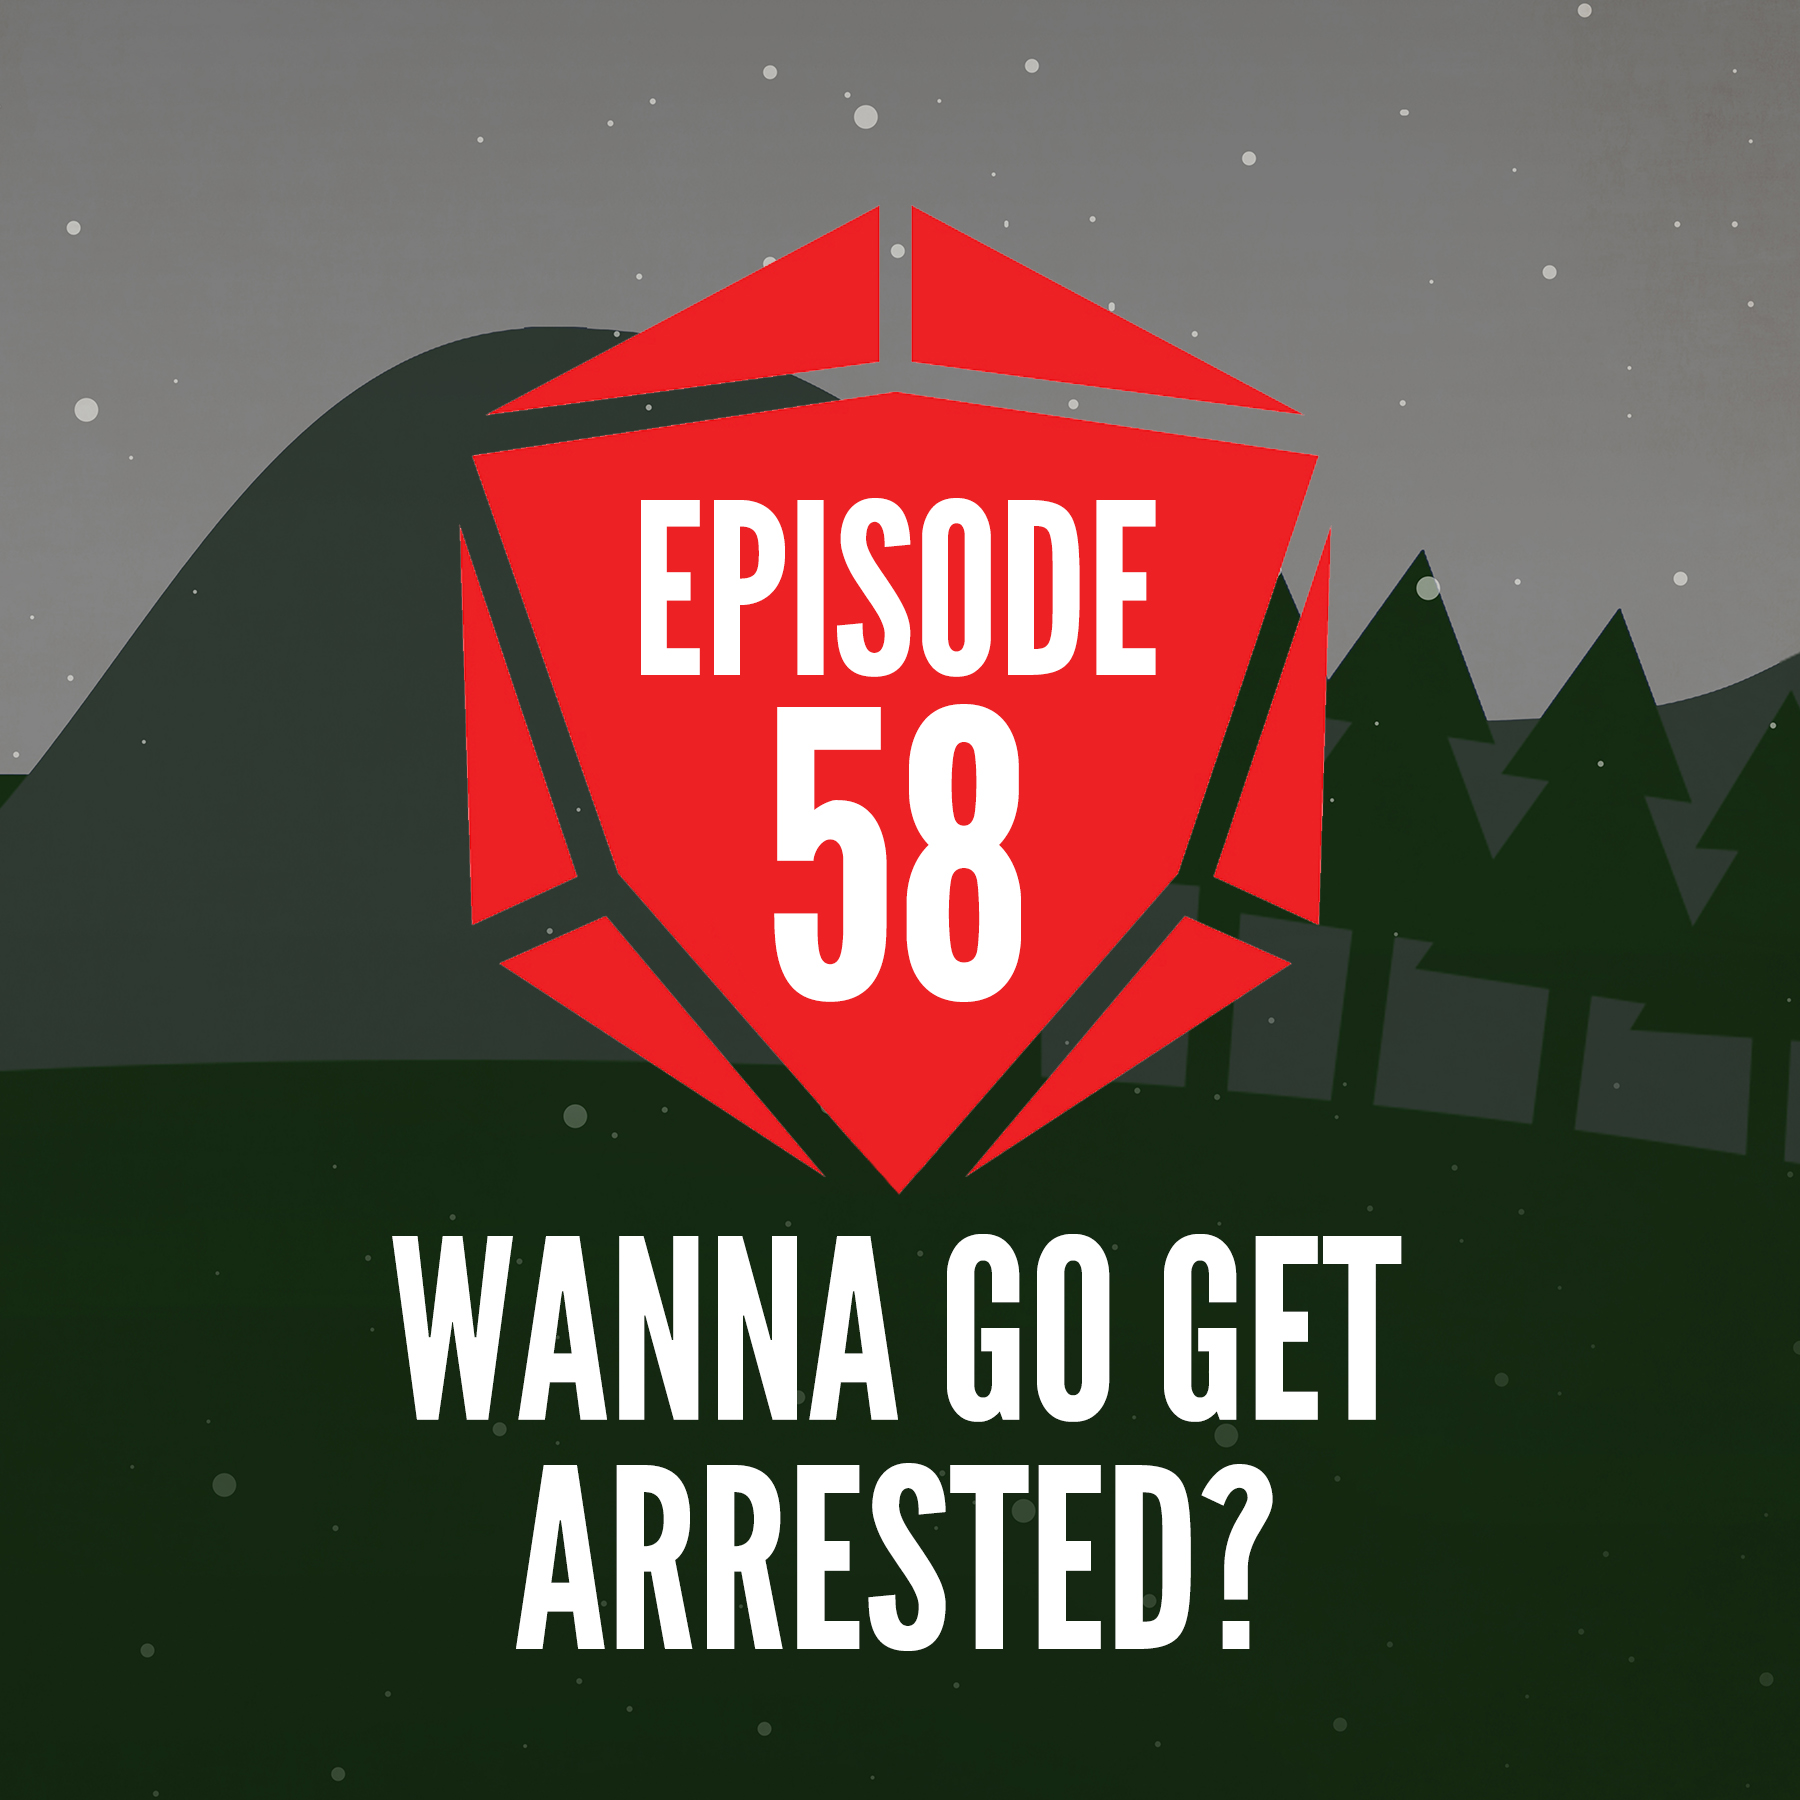 Episode 58: Wanna Go Get Arrested?